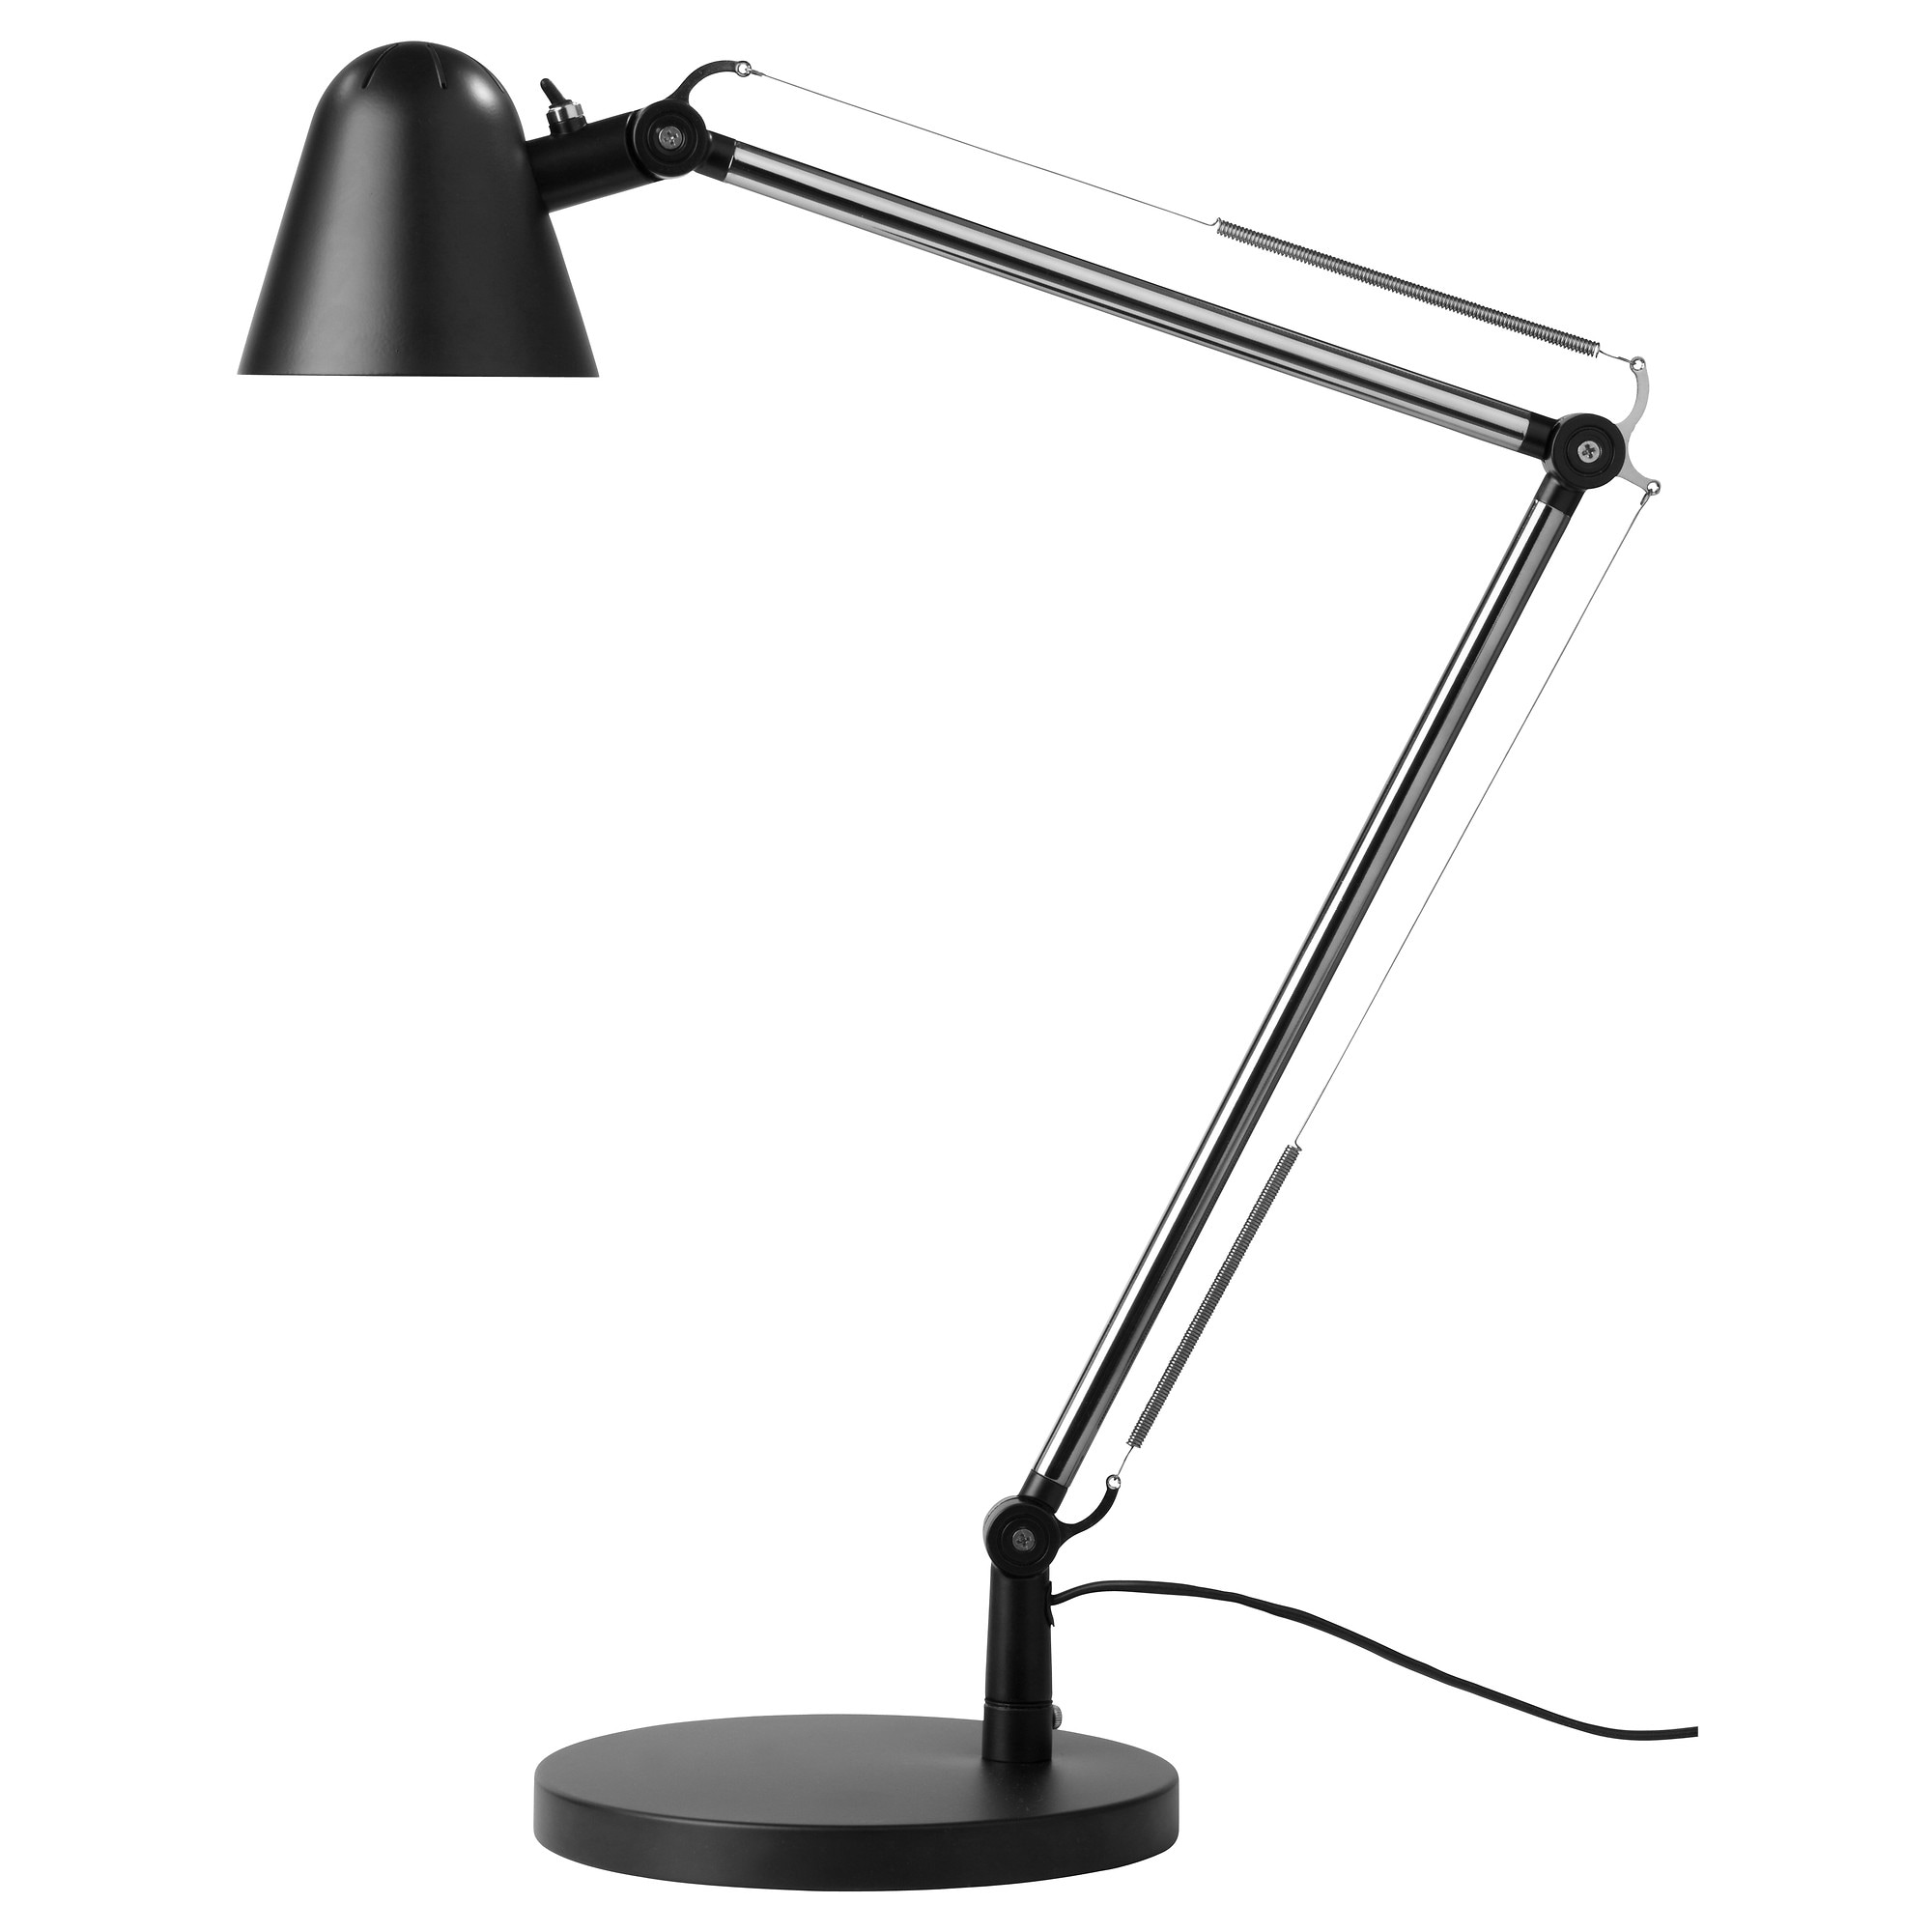 Ikea led desk lamp - Uppbo Work Lamp With Led Bulb Black Max 6 W Height 24